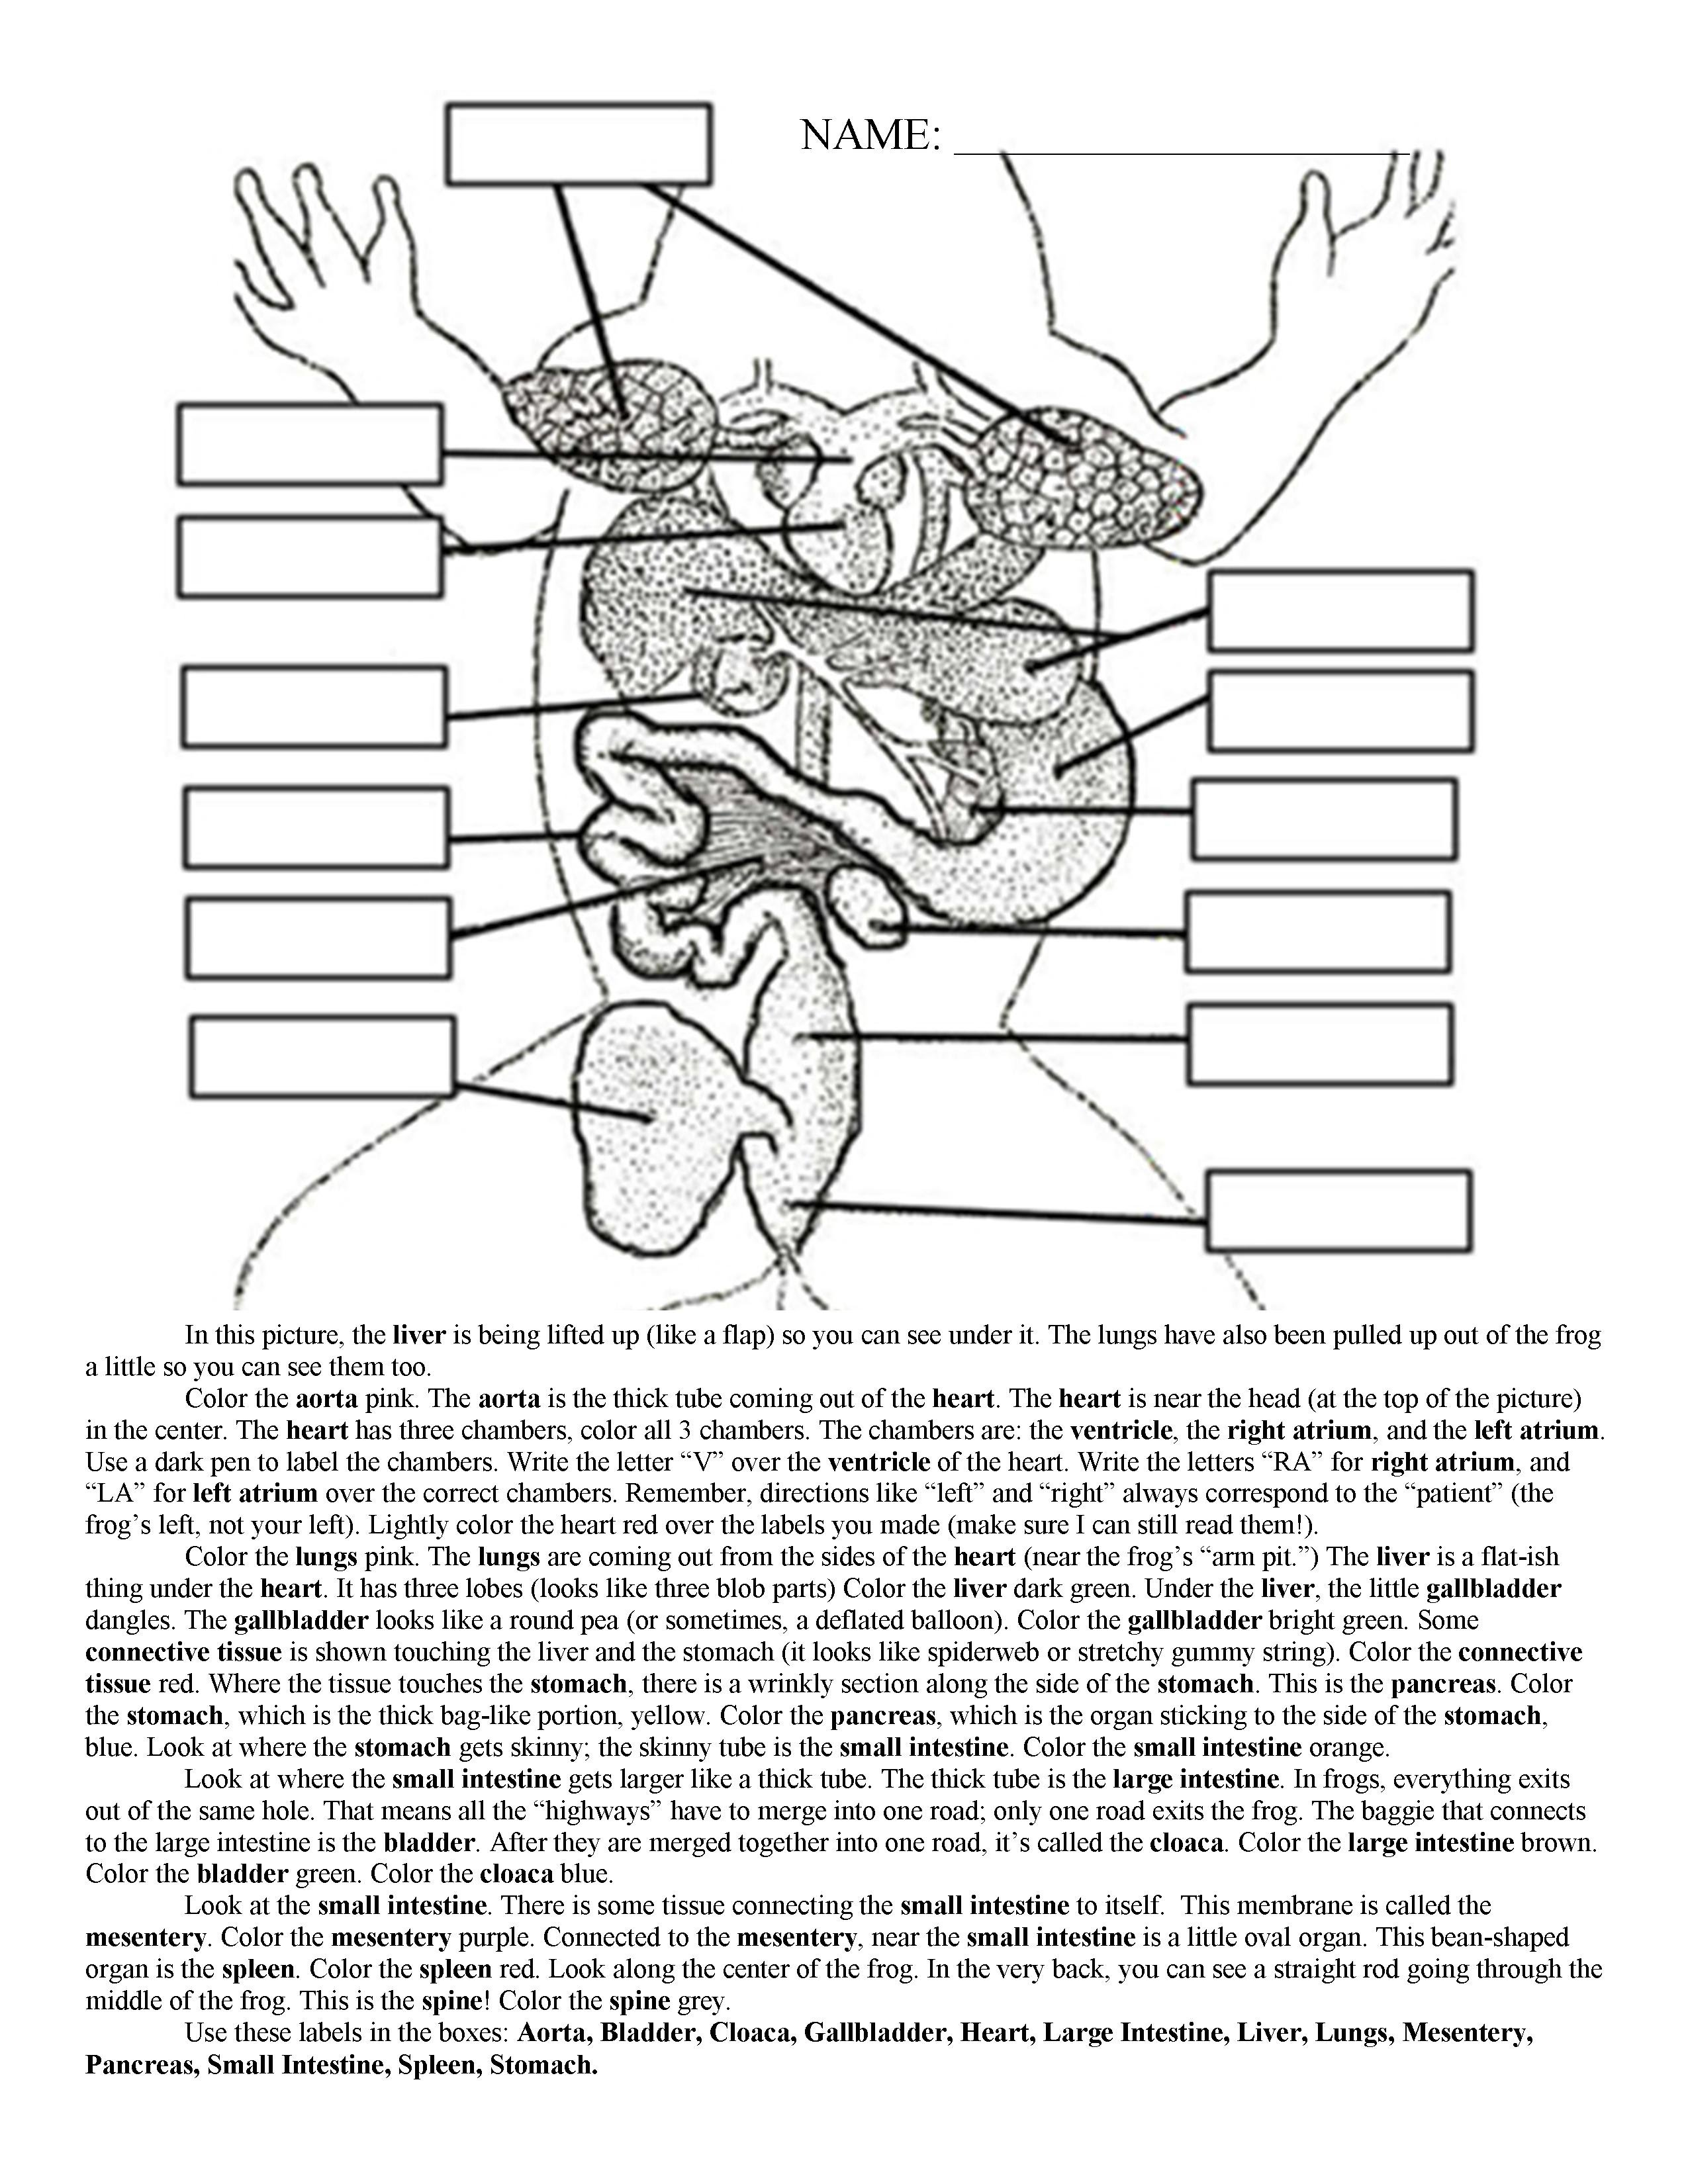 Cut Out Frog Dissection Internal Anatomy Diagram - DIY Wiring Diagrams •